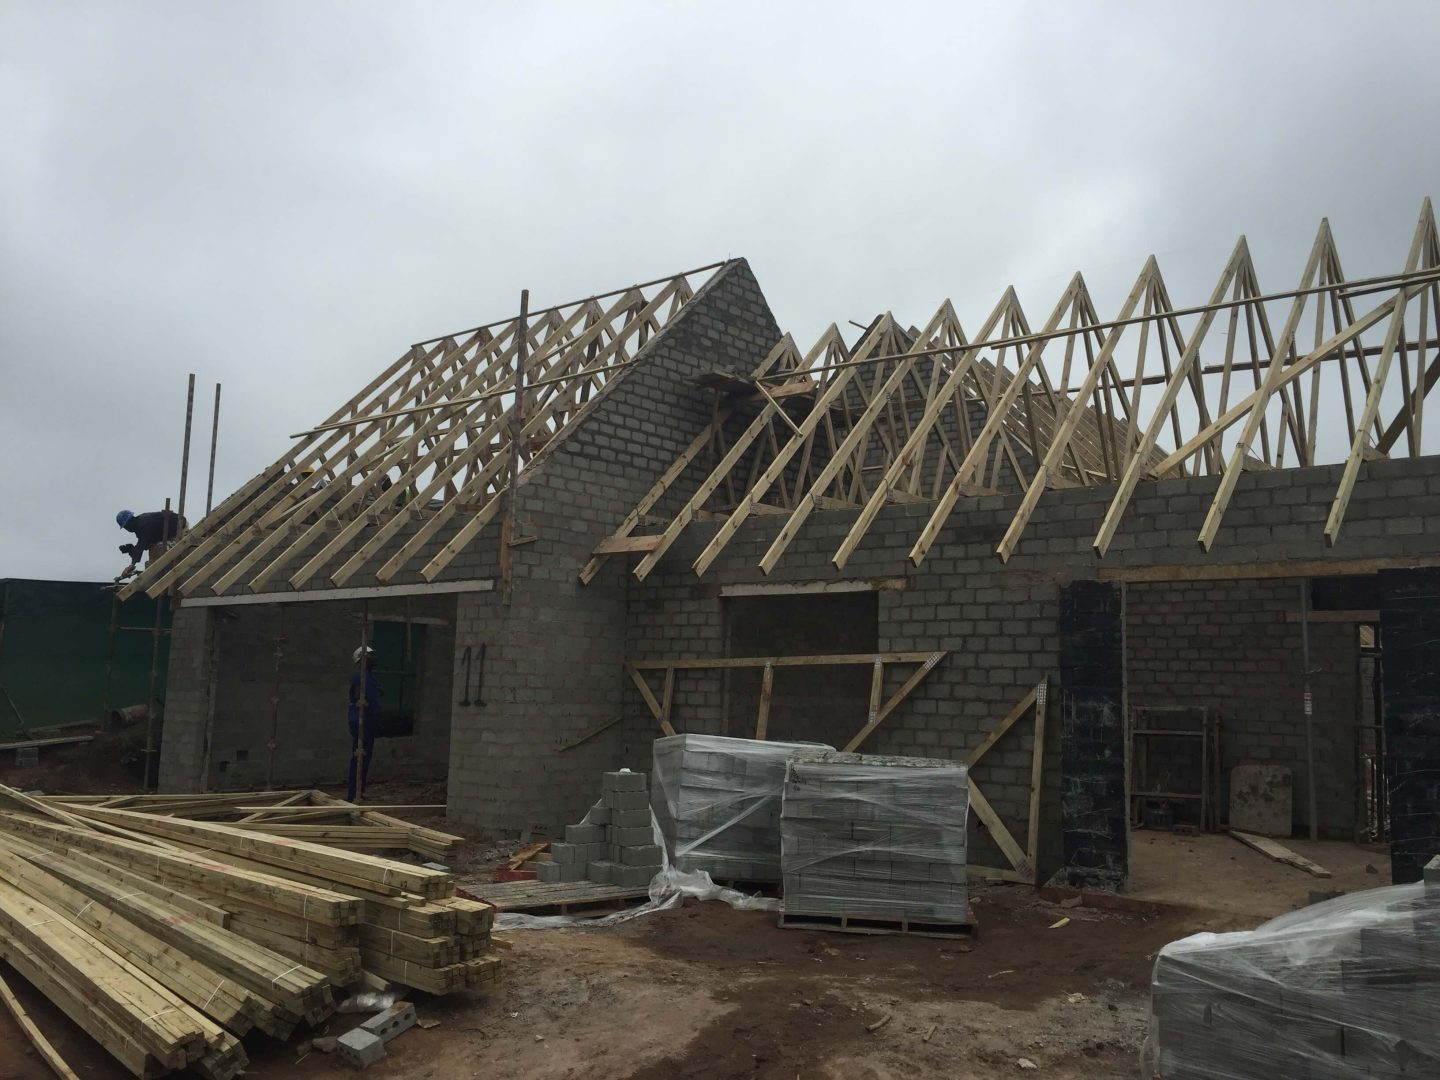 Dezzo Roofing Deerhurst Mews Within Cotswold Downs Roofing Project